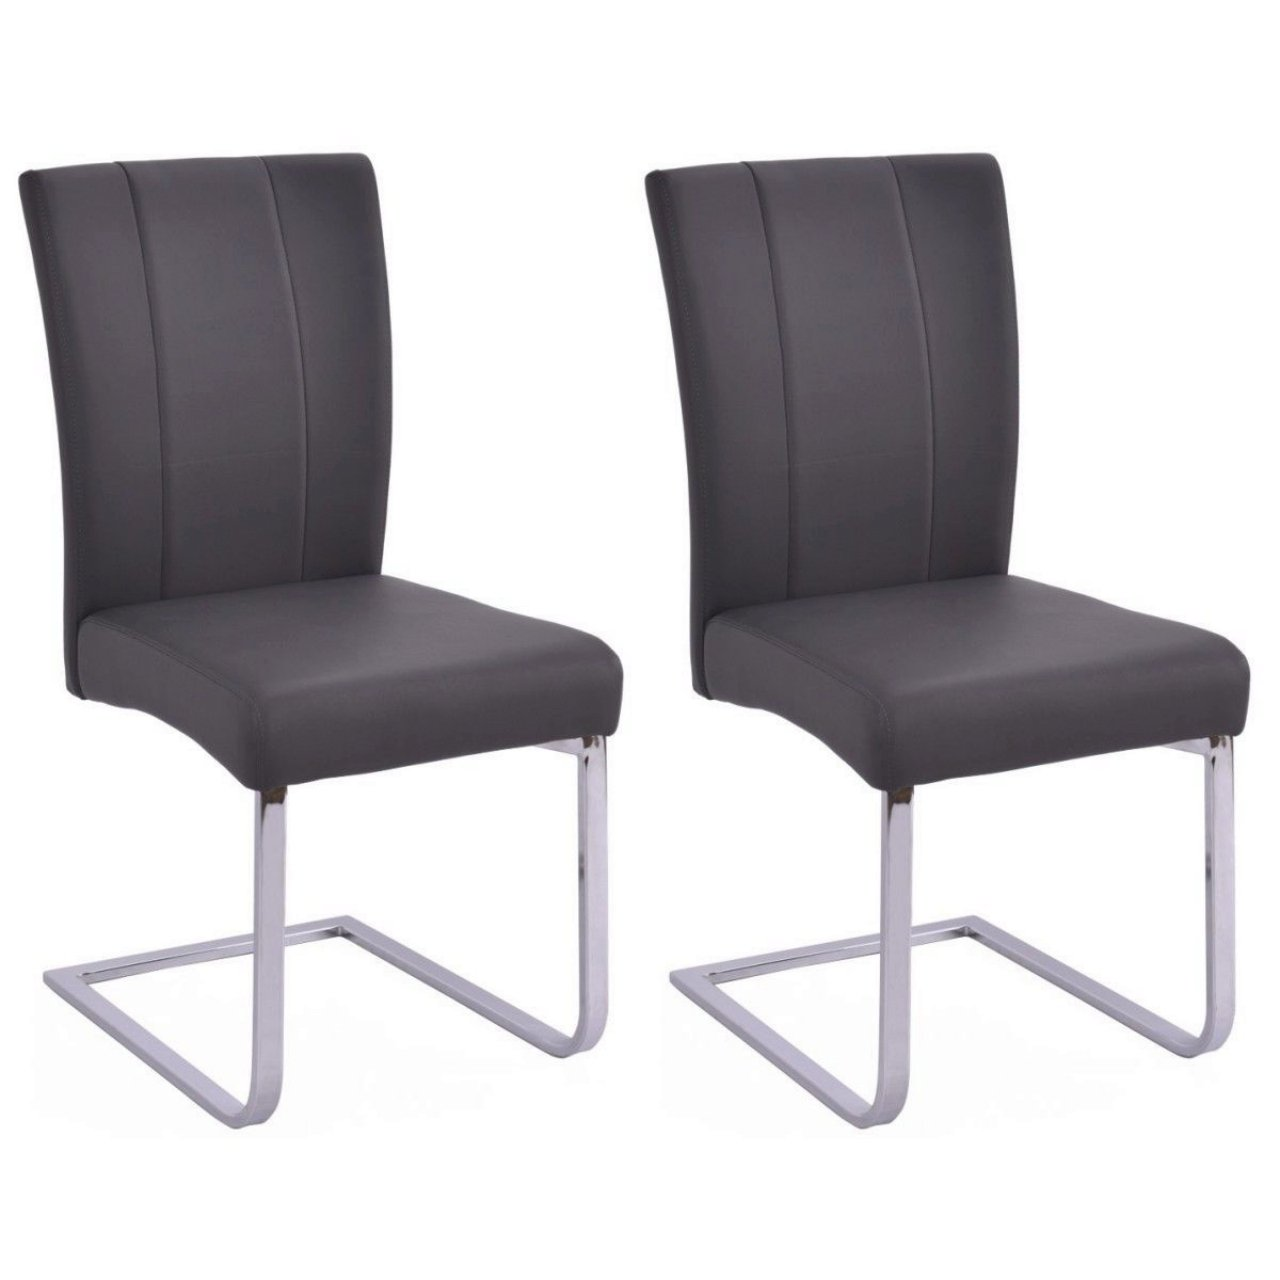 Elegant Dining Chairs High Back Elegant Design Sturdy Stainless Steel Legs Home Office Furniture Grey - Set of 2 #1006